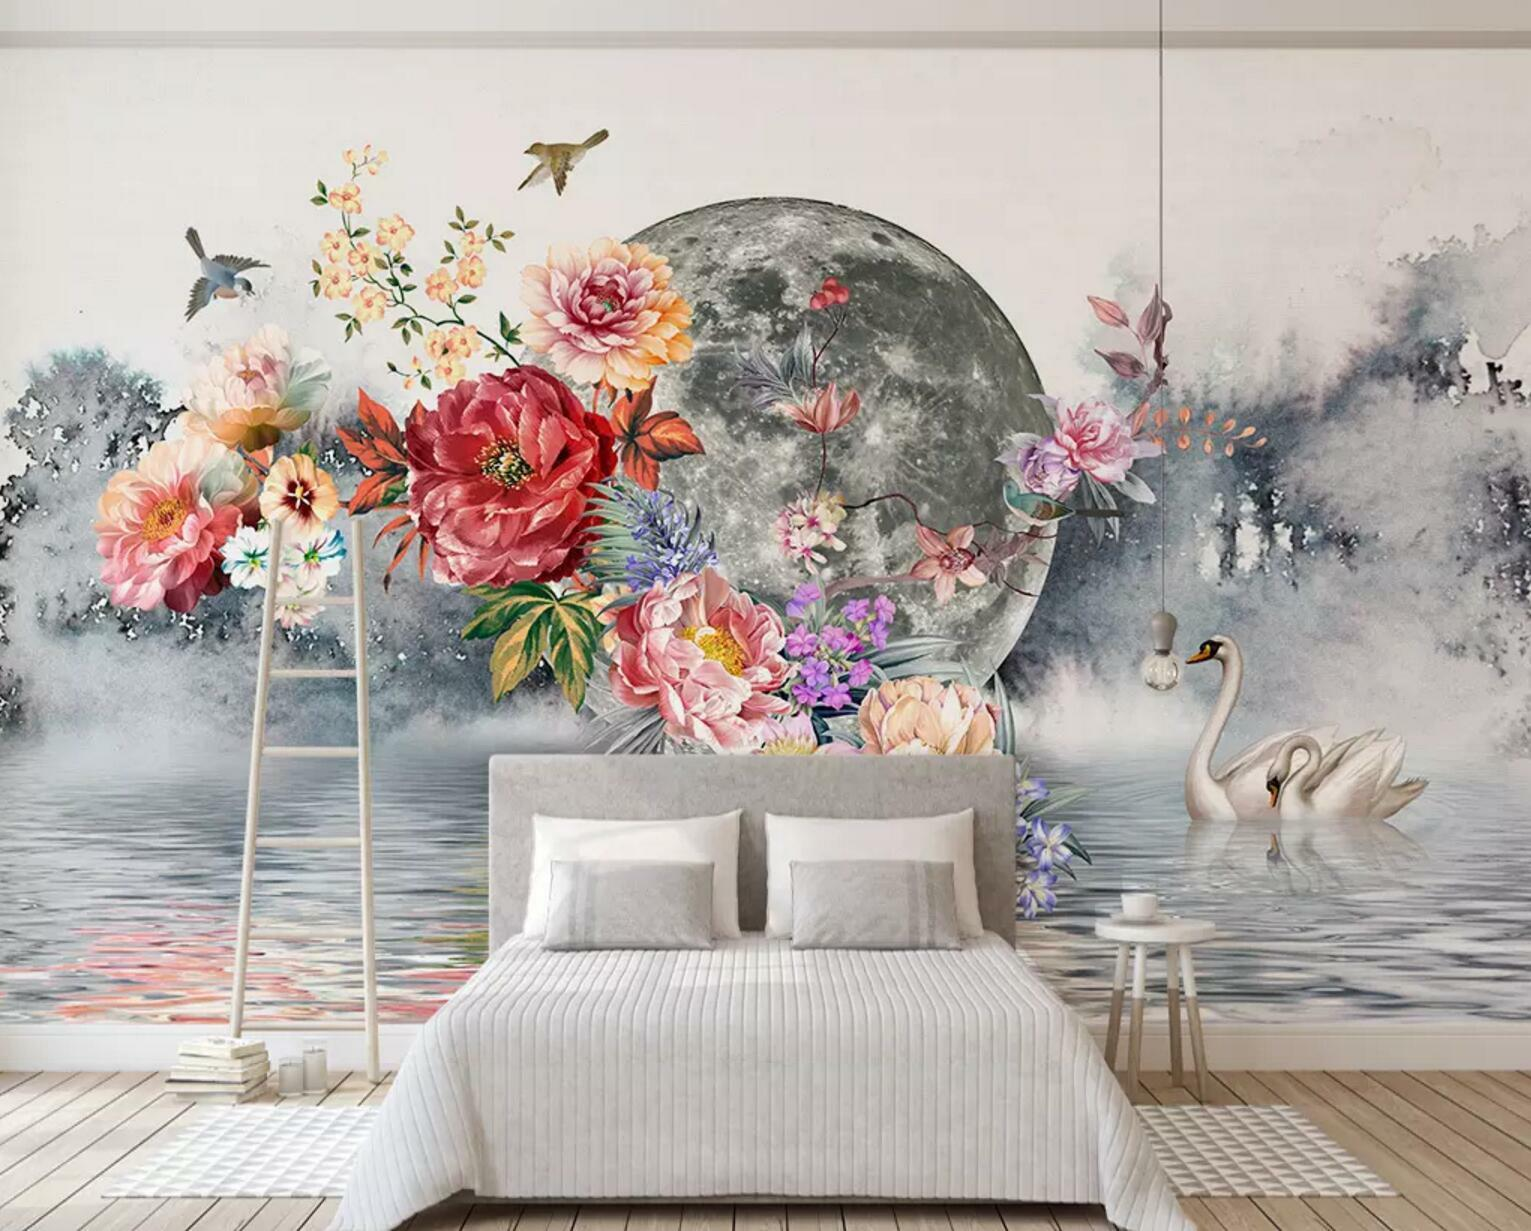 3D Swan Bird Flower 323 Wall Paper Exclusive MXY Wallpaper Mural Decal Indoor